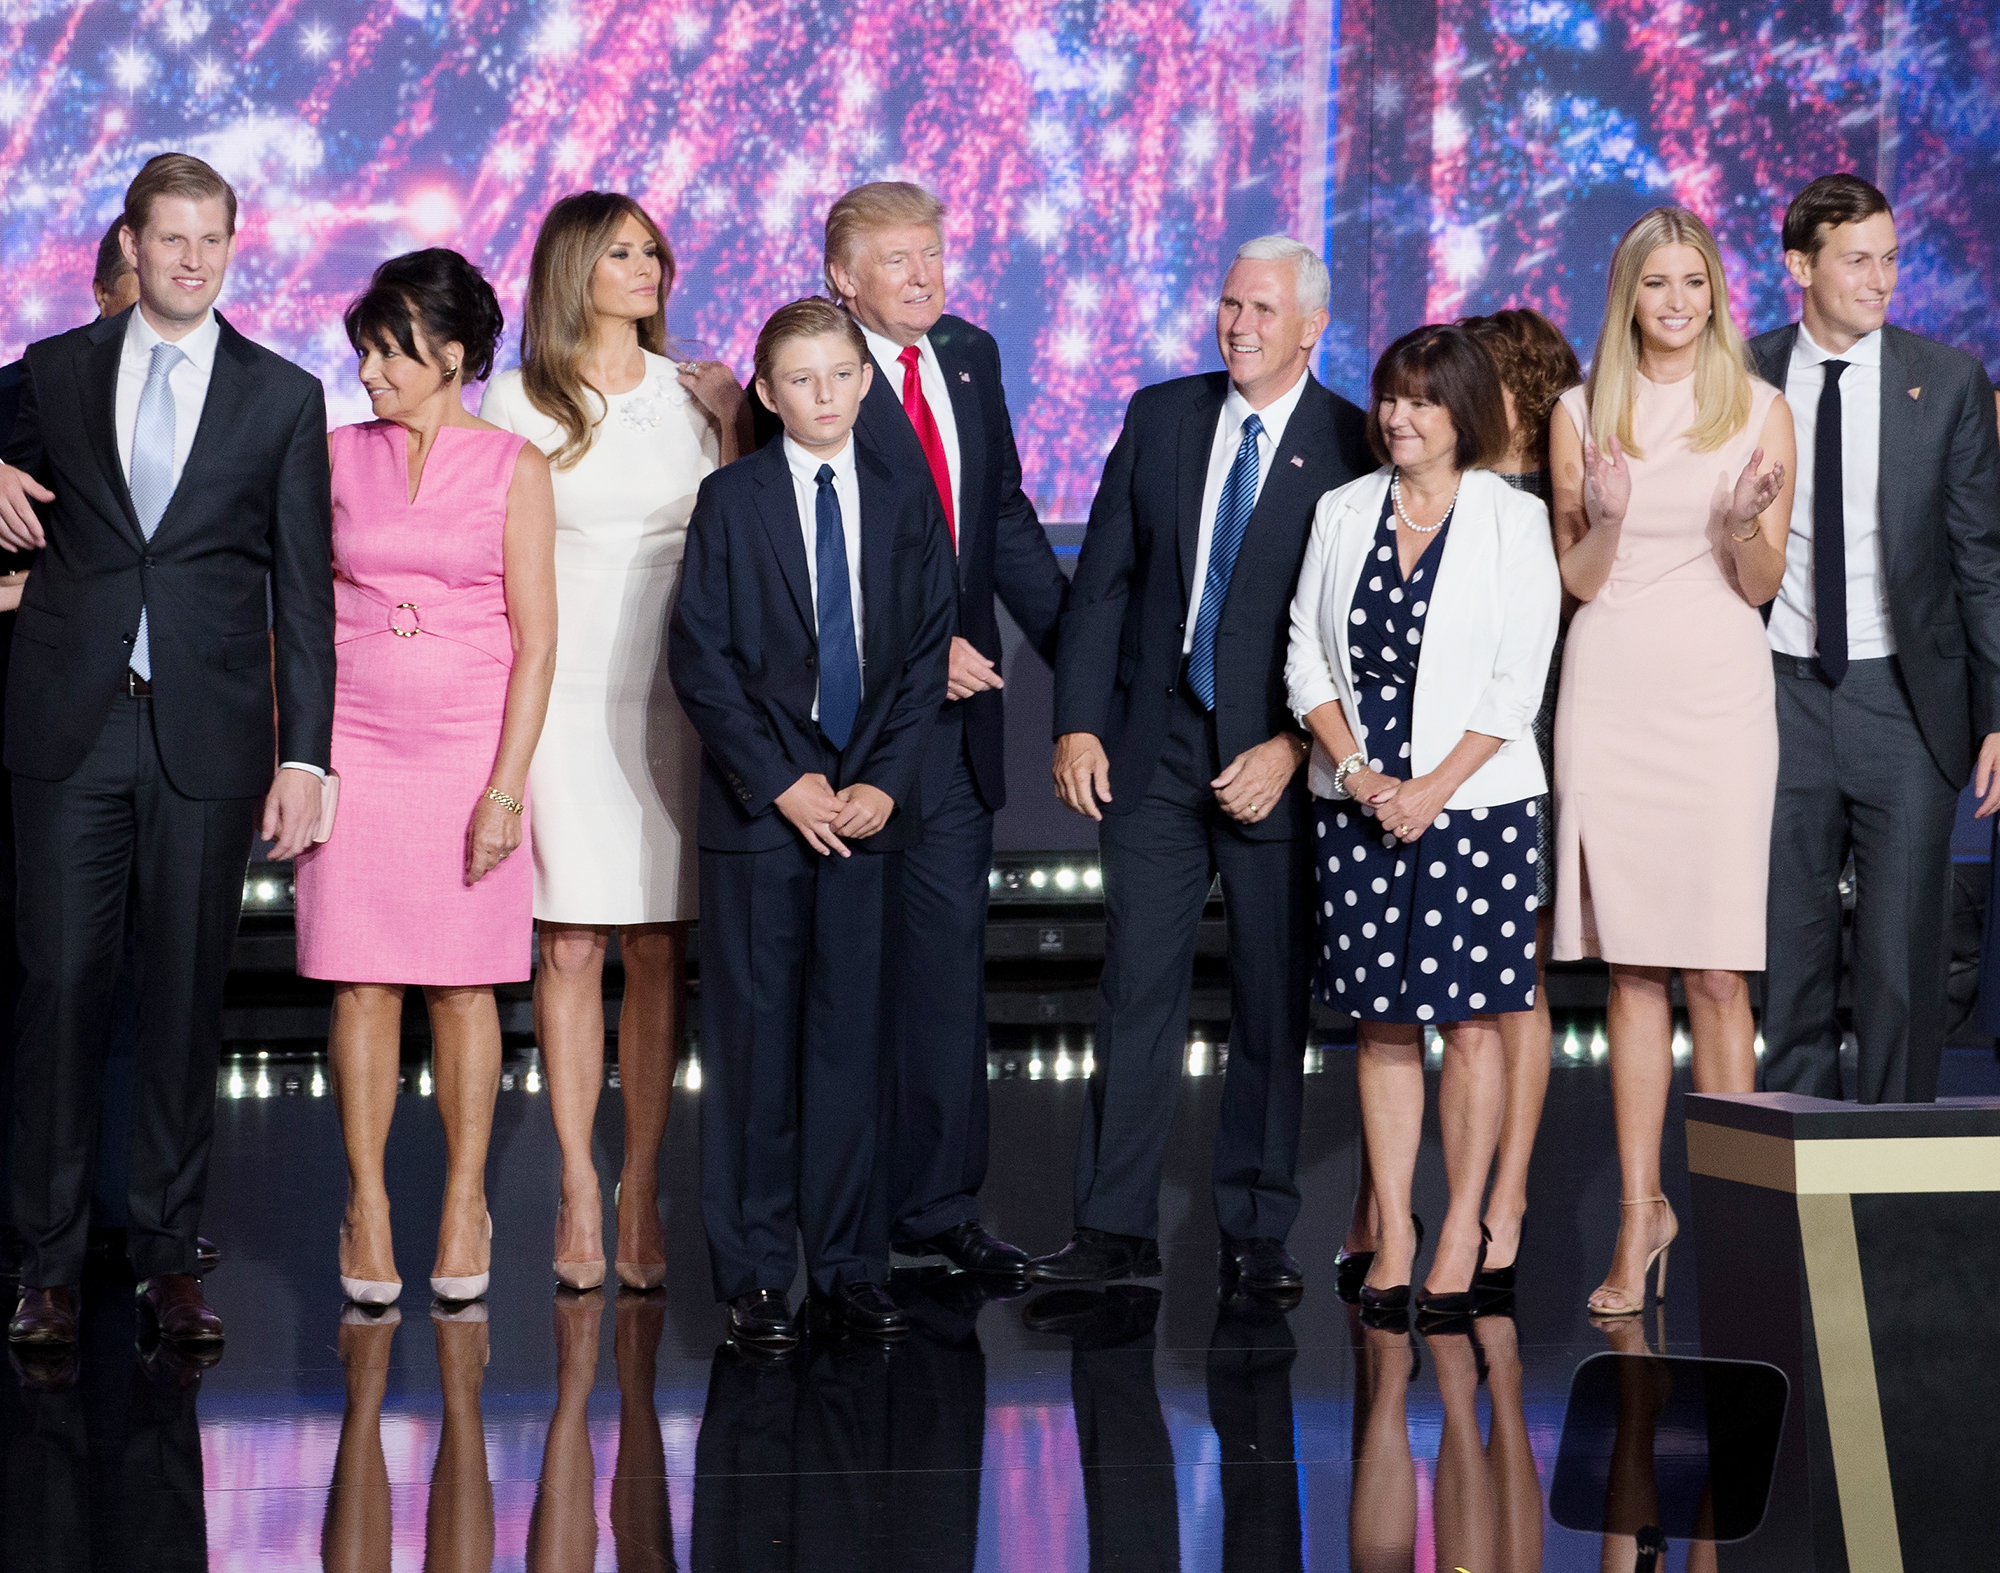 Eric Trump, Guest, Melania Trump, Barron Trump, Donald Trump, Mike Pence, Karen Pence, Ivanka Trump and Jared Kushner enjoy the fourth day of the Republican National Convention on July 21, 2016 at the Quicken Loans Arena in Cleveland, Ohio. An estimated 50,000 people are expected in Cleveland, including hundreds of protestors and members of the media. The convention runs through July 21.